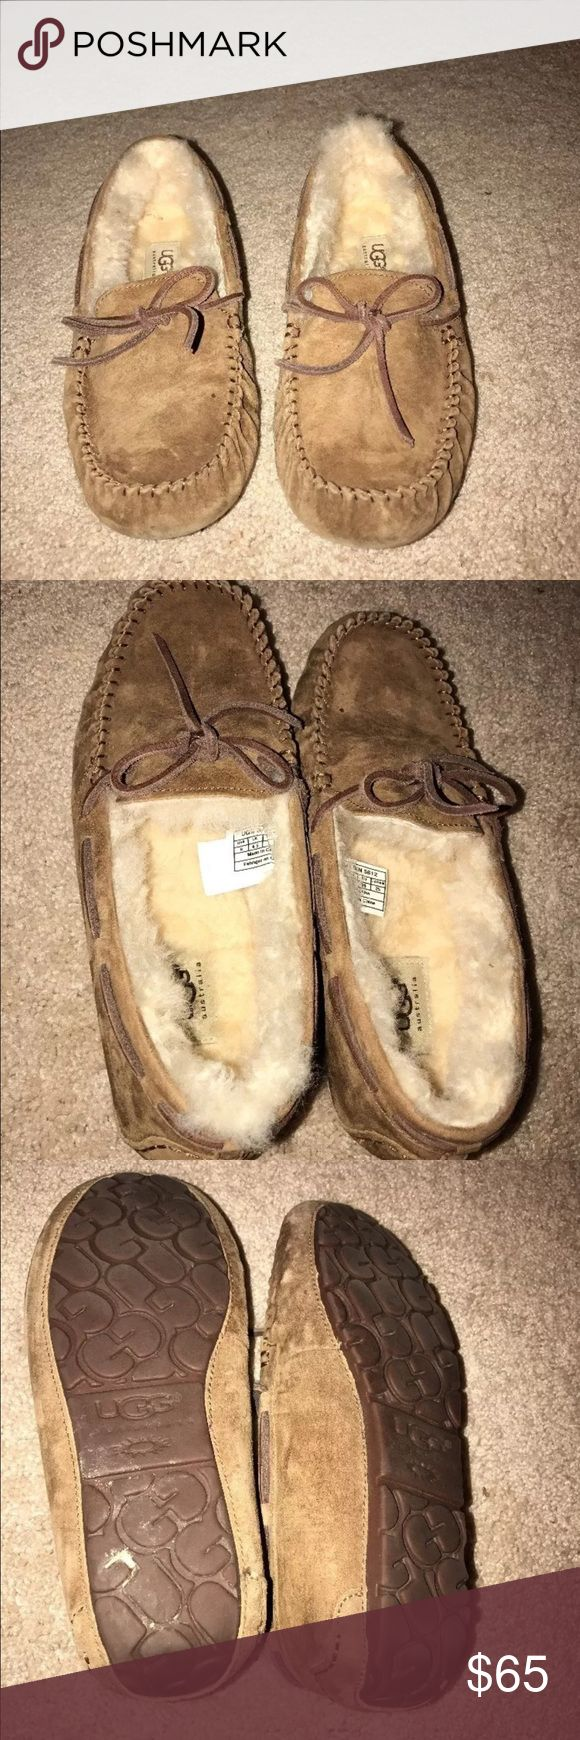 Ugg chestnut fur slippers size 8 In great condition! Only worn a few times. Nonsmoking home. UGG Shoes Slippers